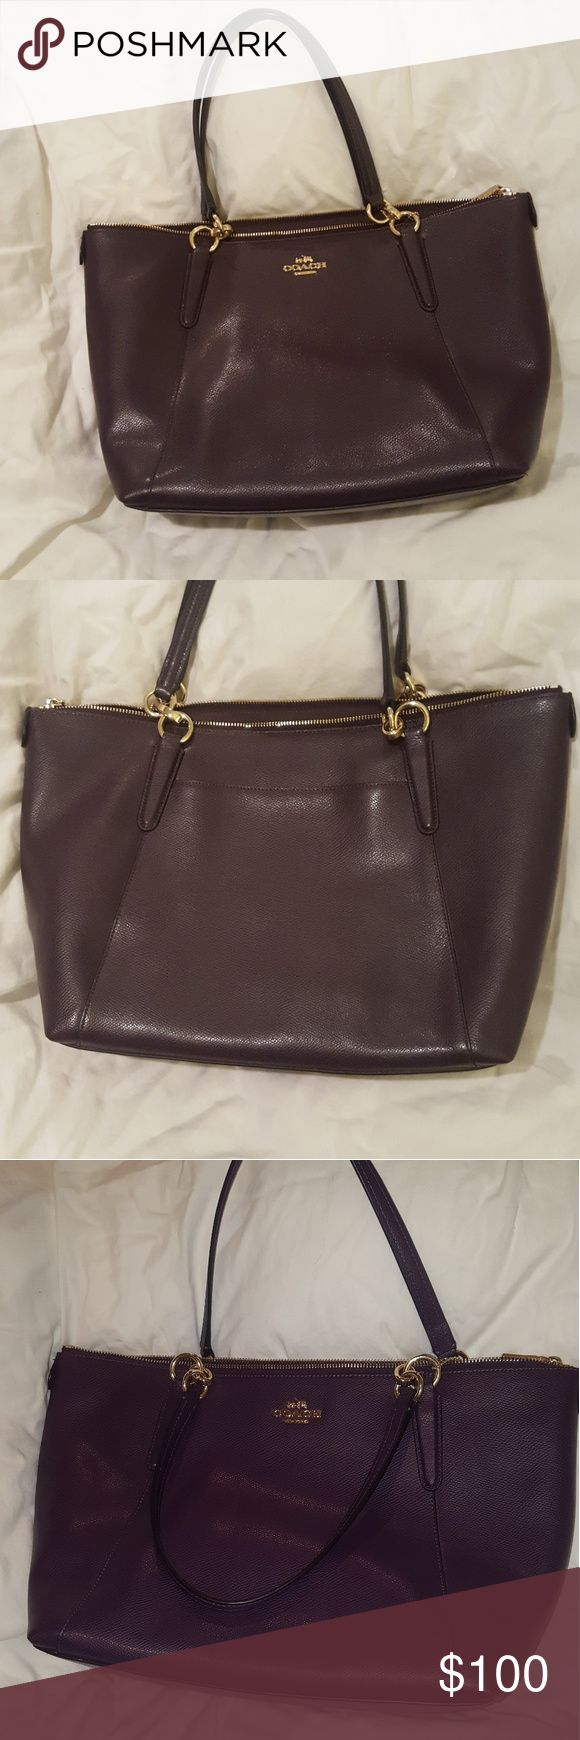 """Like new Coach handbag/purse Beautiful dark purple/eggplant color with gold accents. 17"""" wide by 11"""" tall with a handle drop of 8"""". Like new condition, no marks or blemishes. Coach Bags Shoulder Bags"""